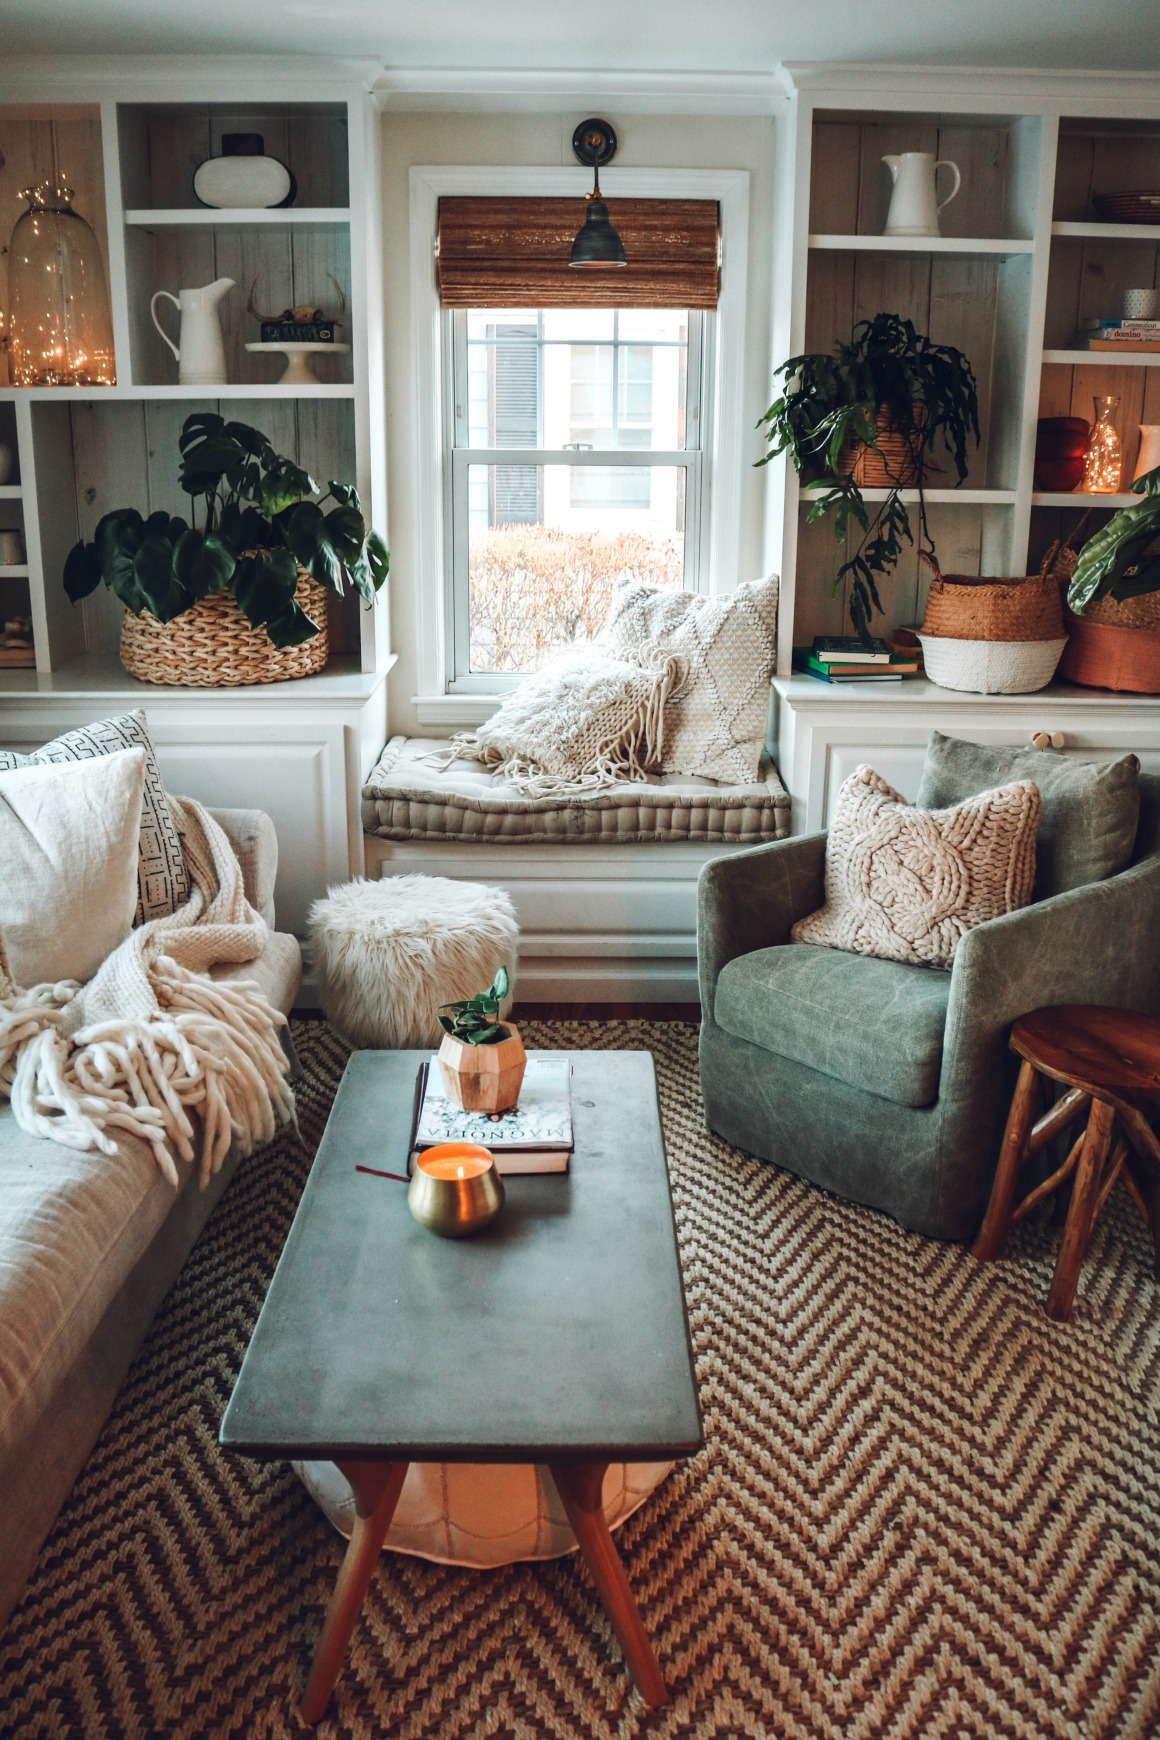 10 Reasons Your Home Looks Cheap